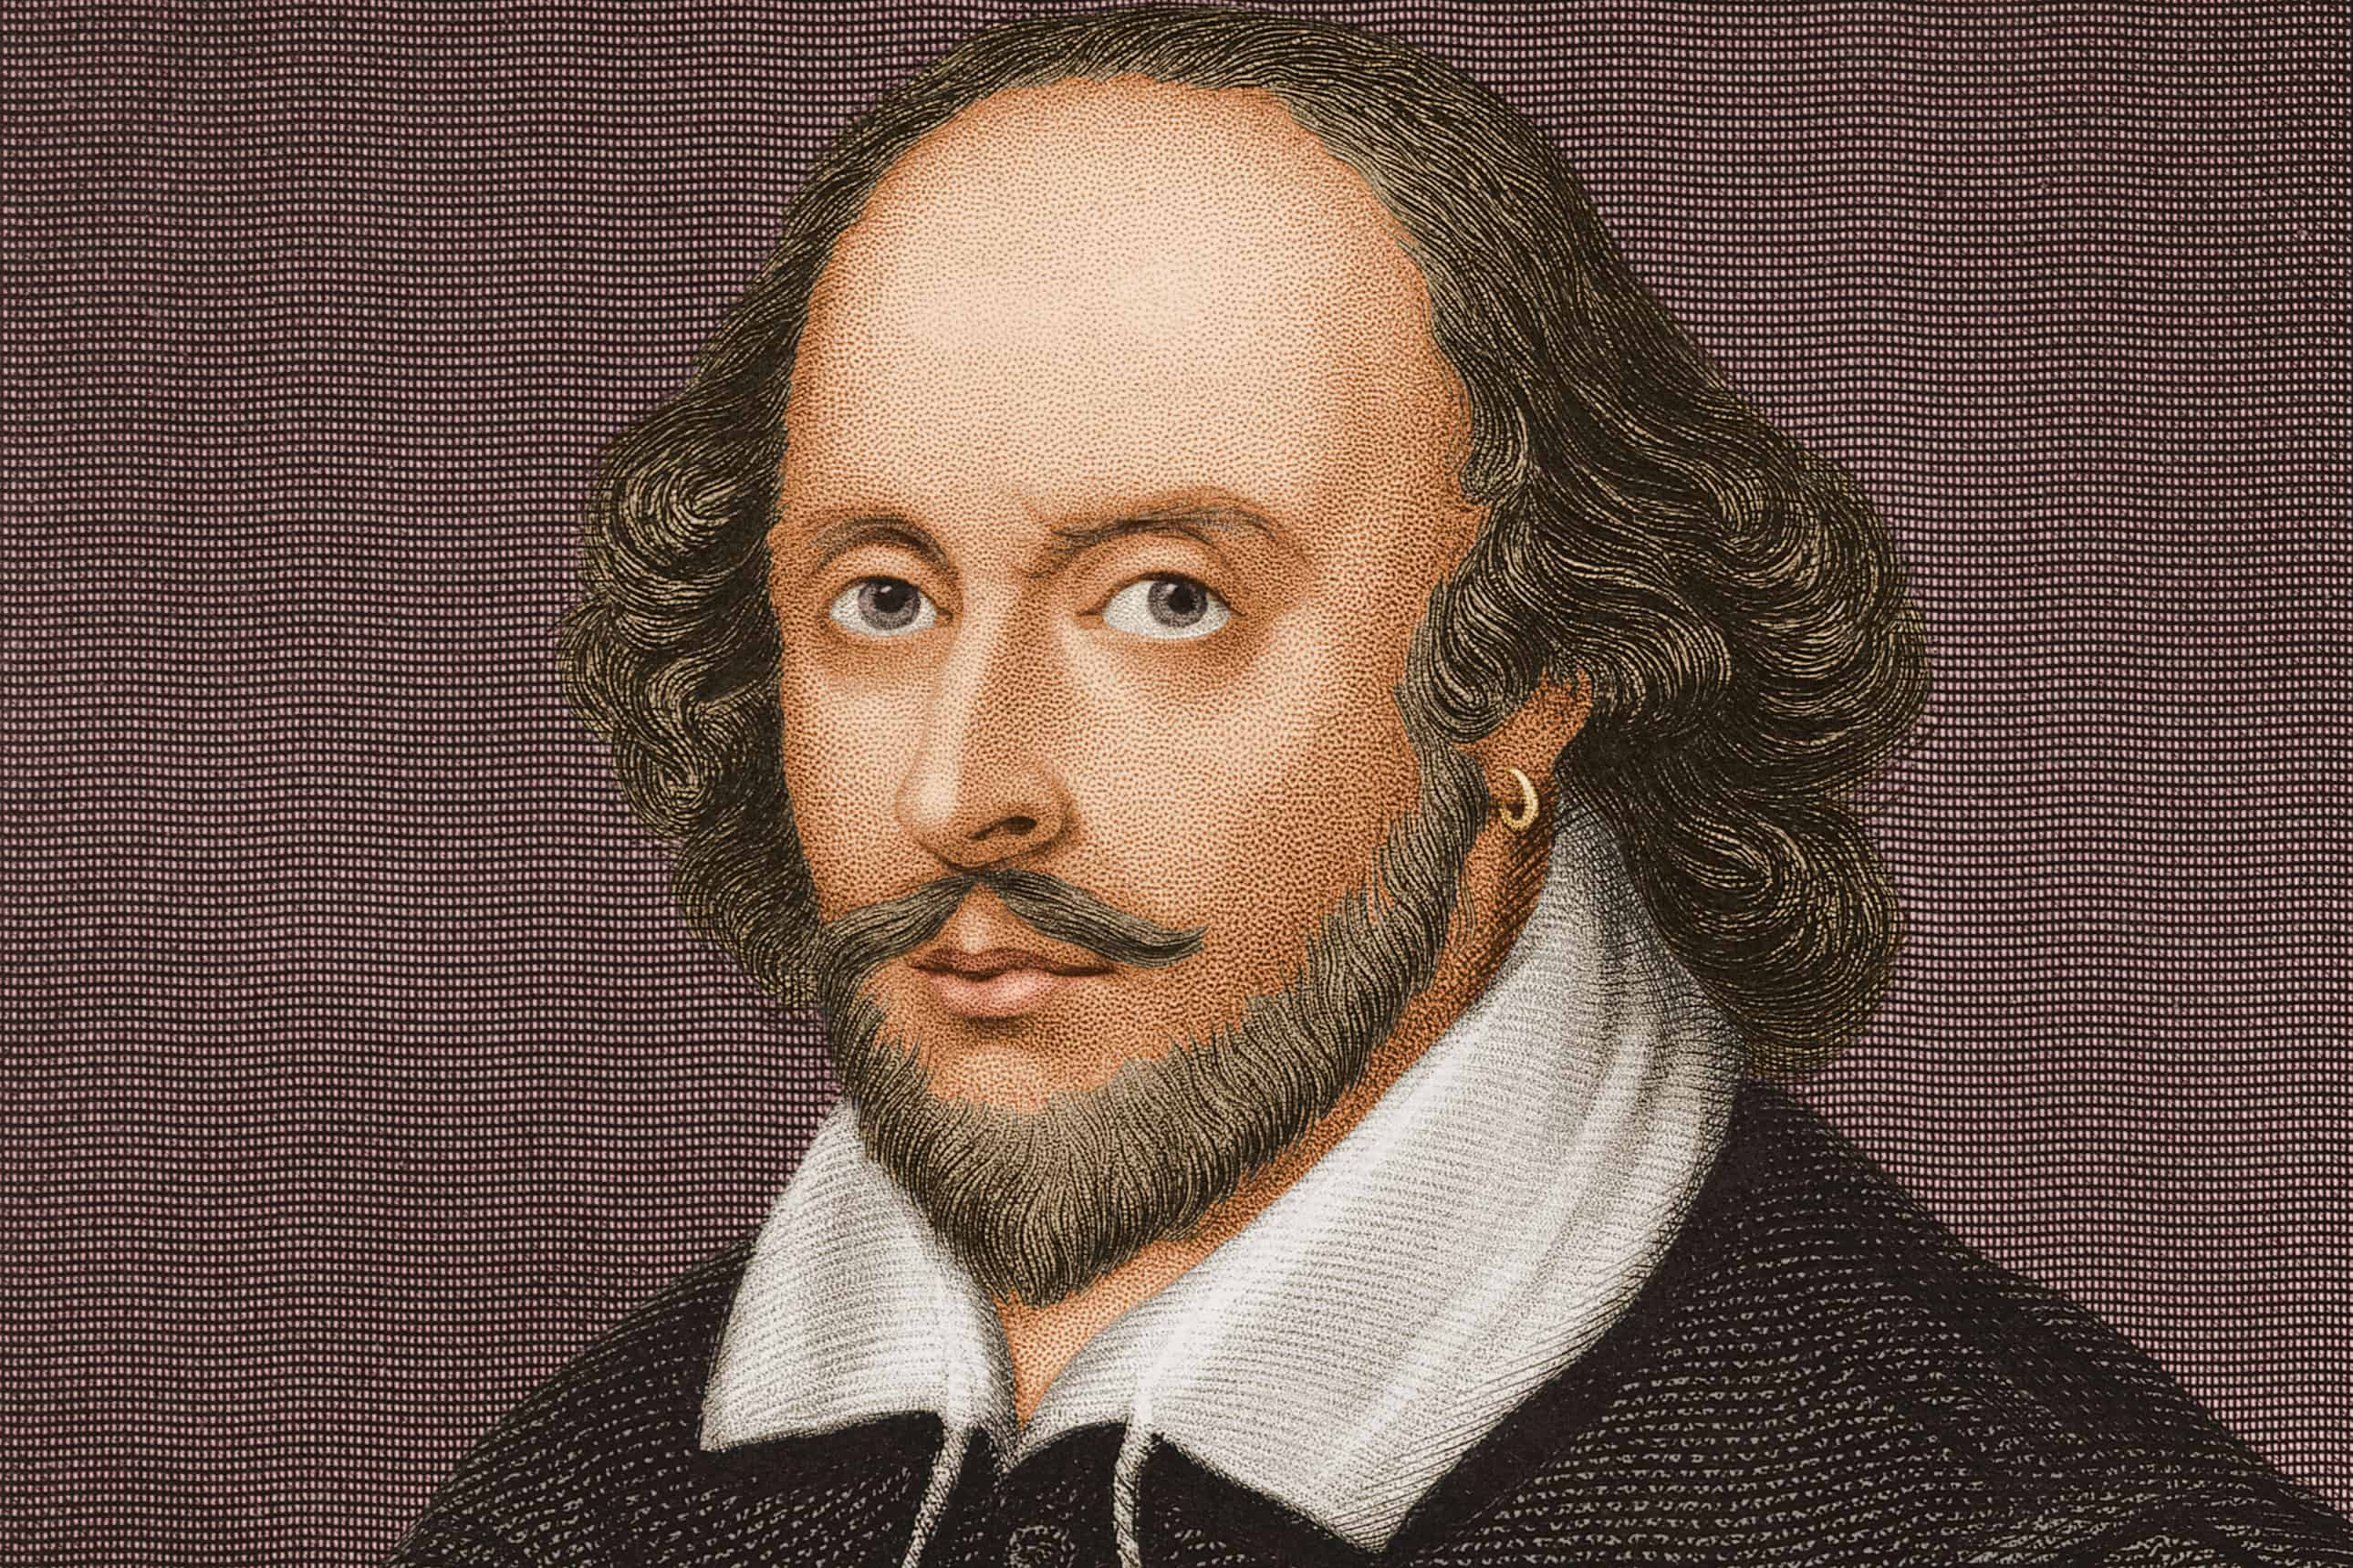 Circa 1600, English playwright and poet William Shakespeare (1564-1616). (Photo by Stock Montage/Getty Images)